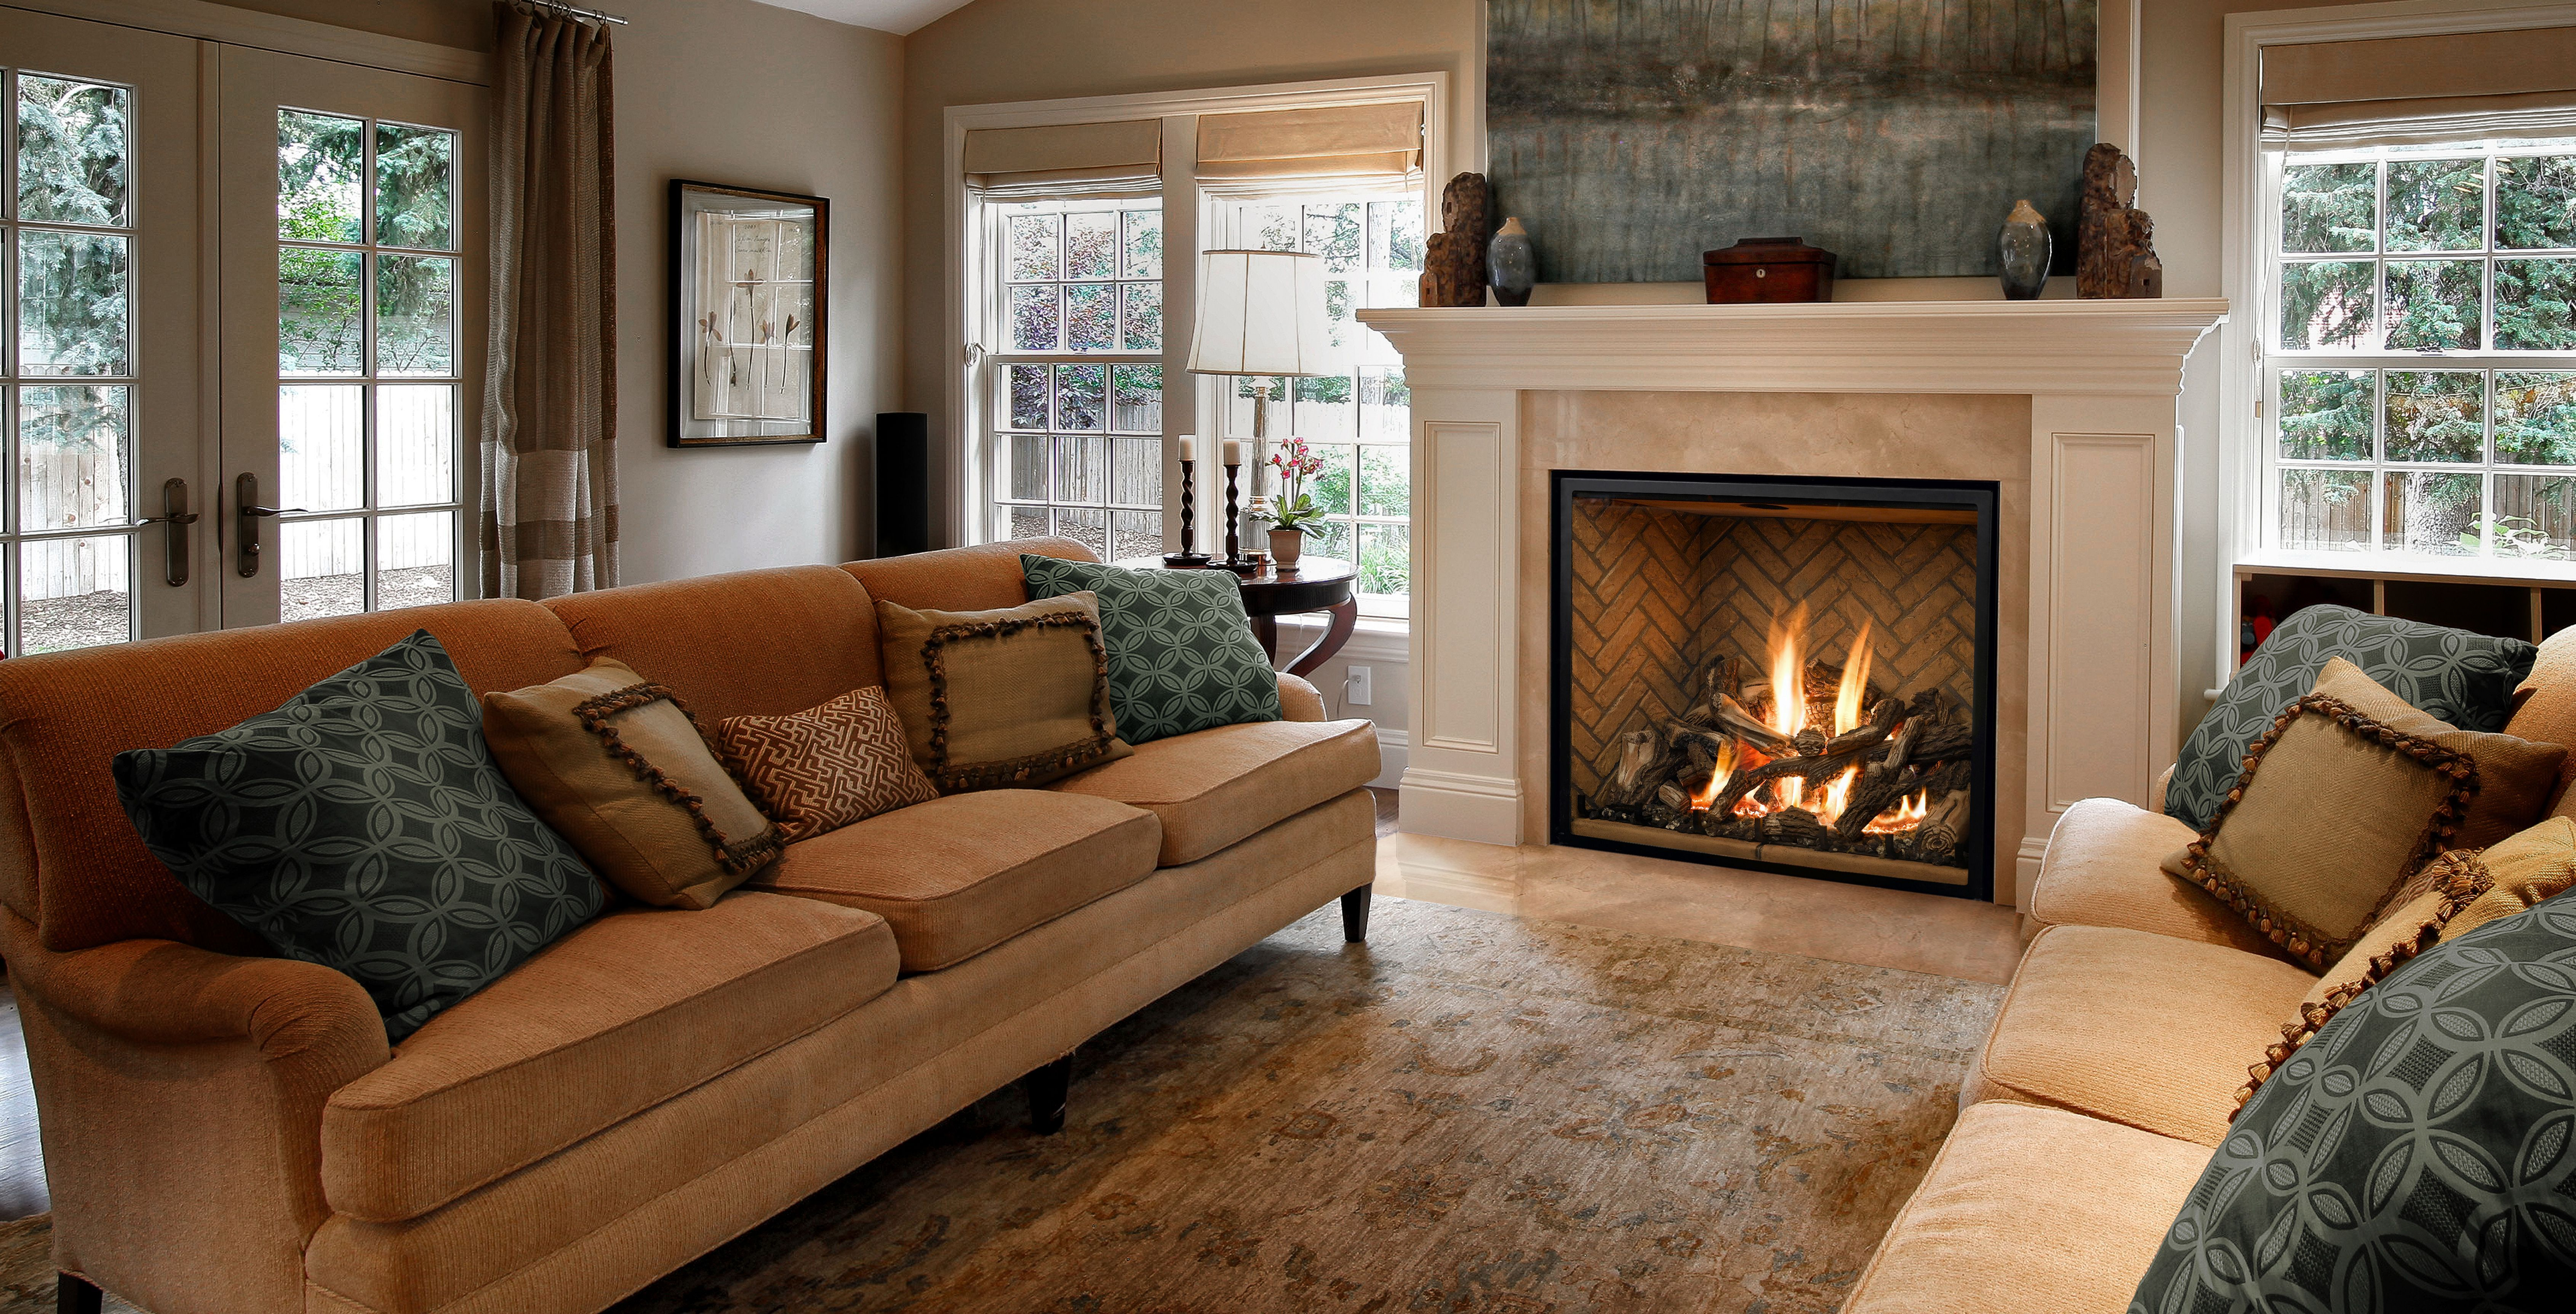 25 Classic Fireplace Design Ideas For Apartment Living Room